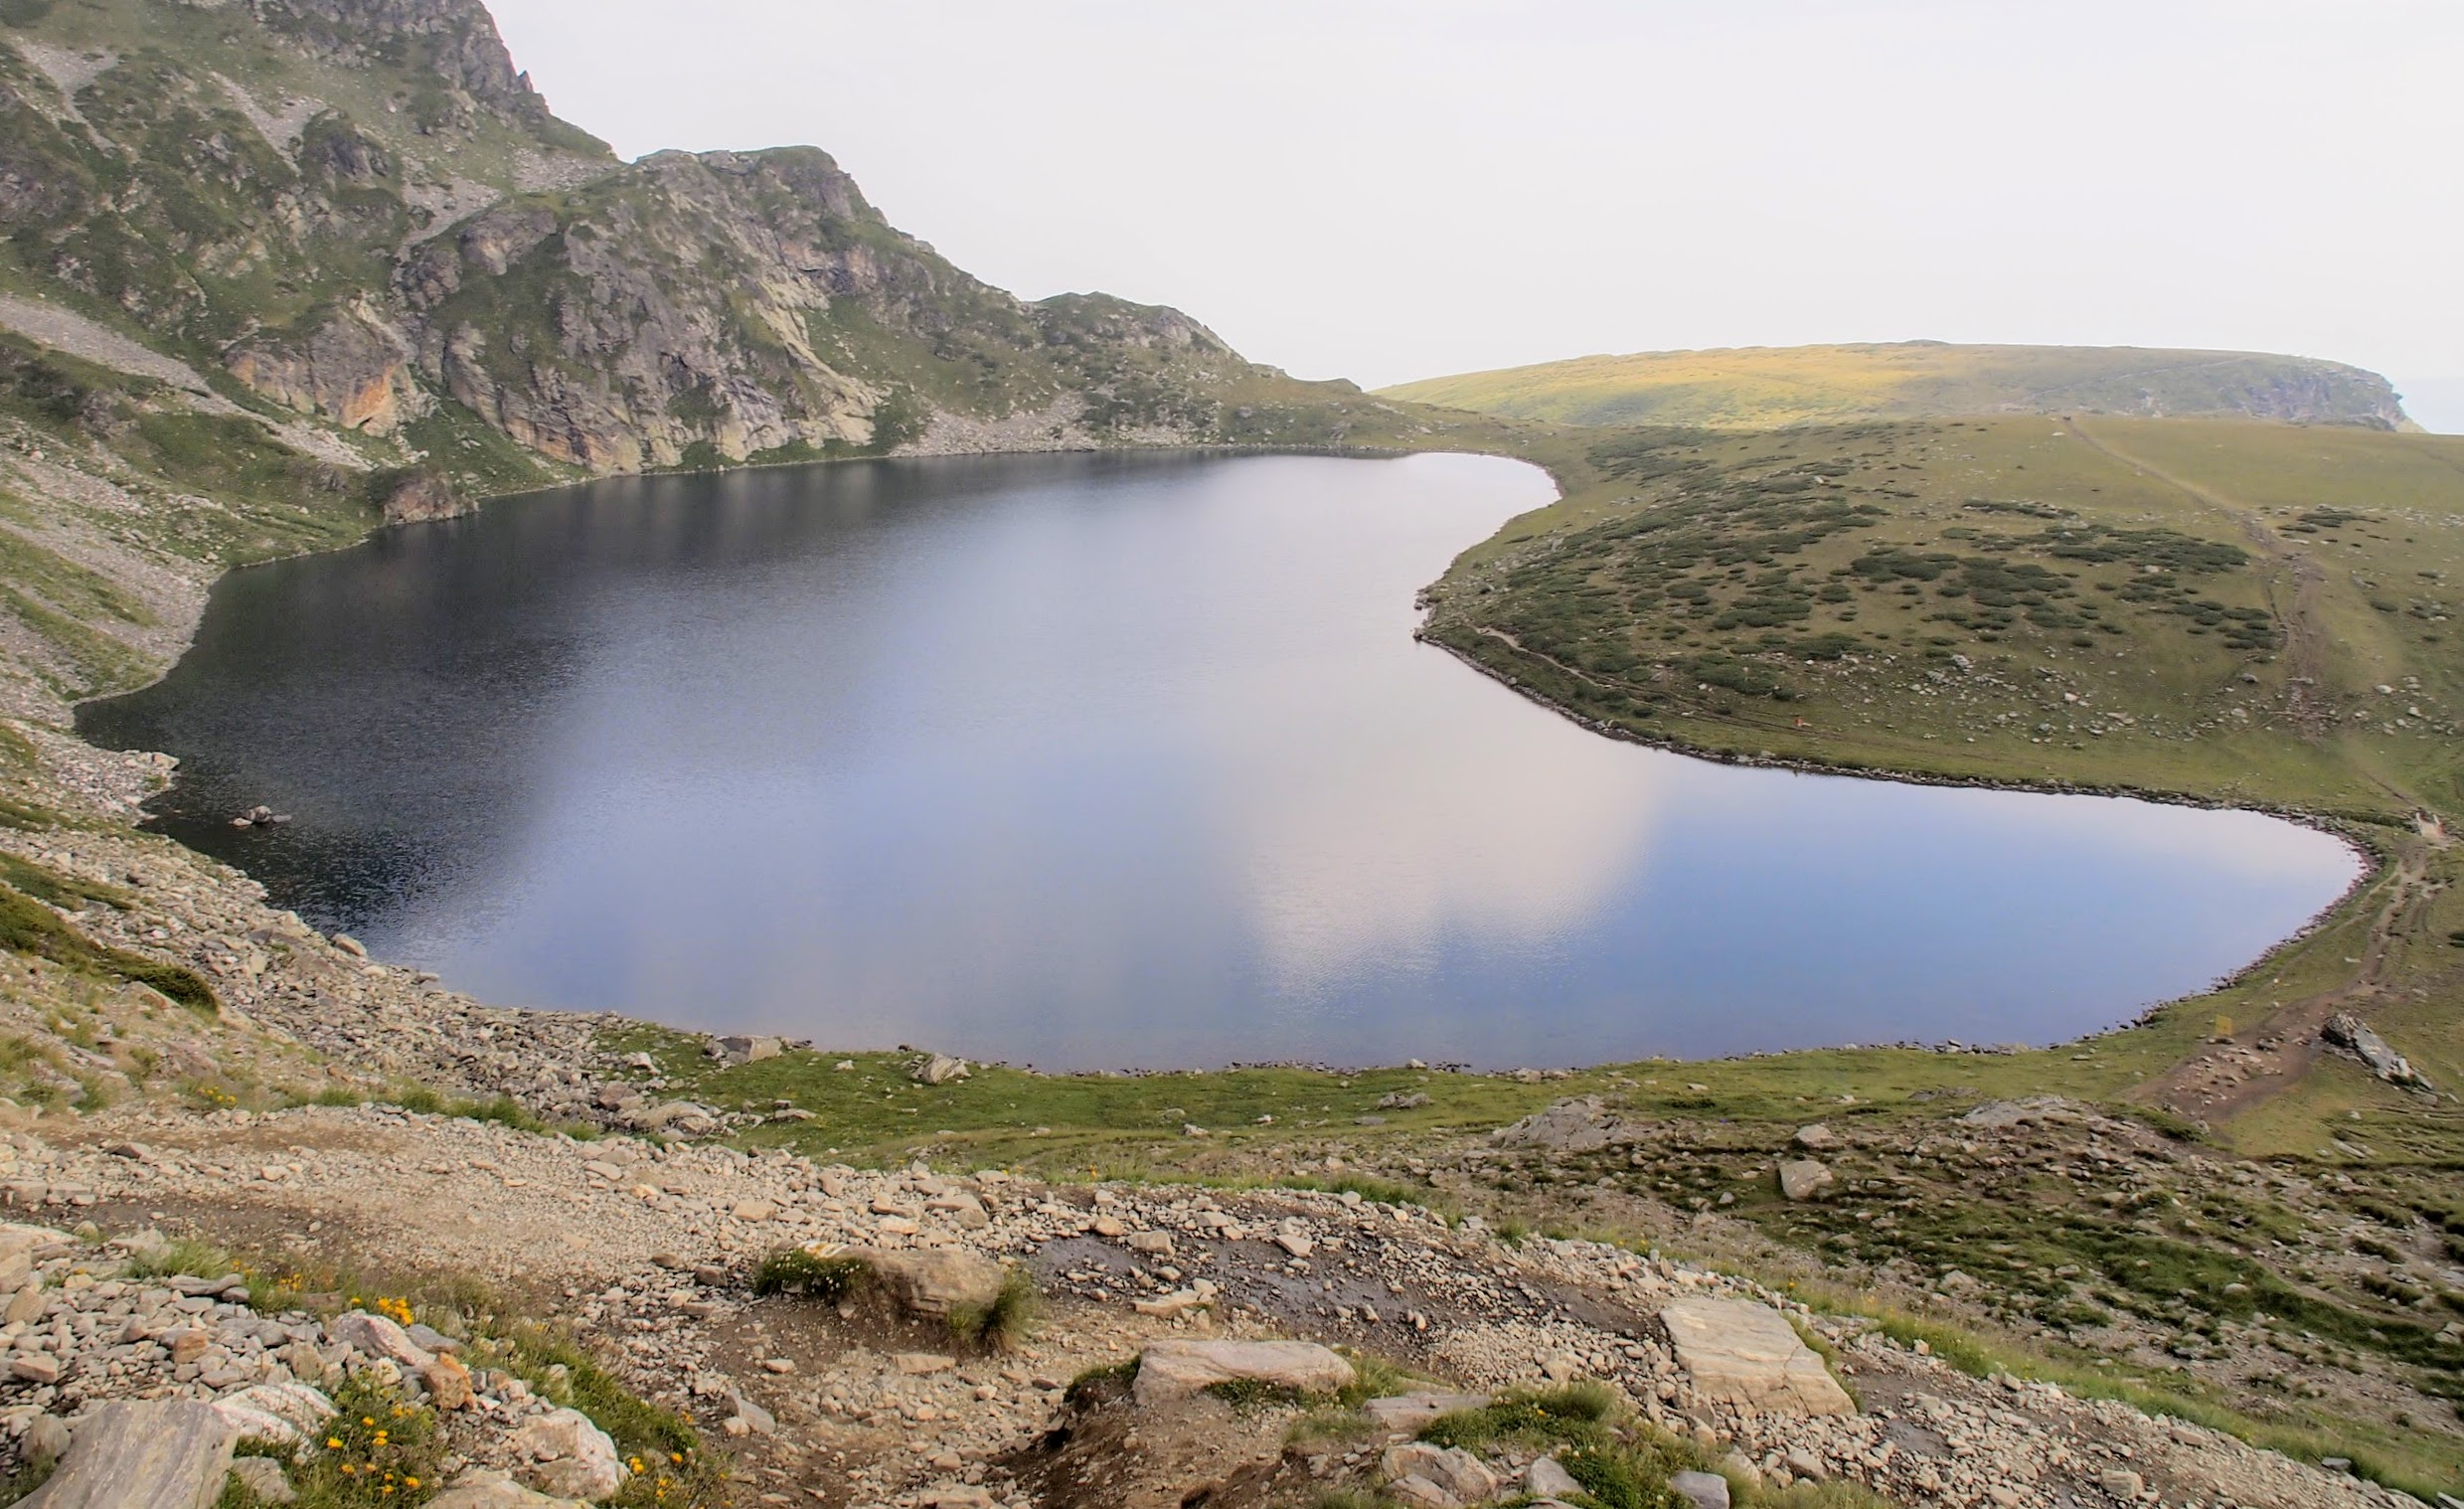 Kidney Lake, one of the 7 Rila Lakes